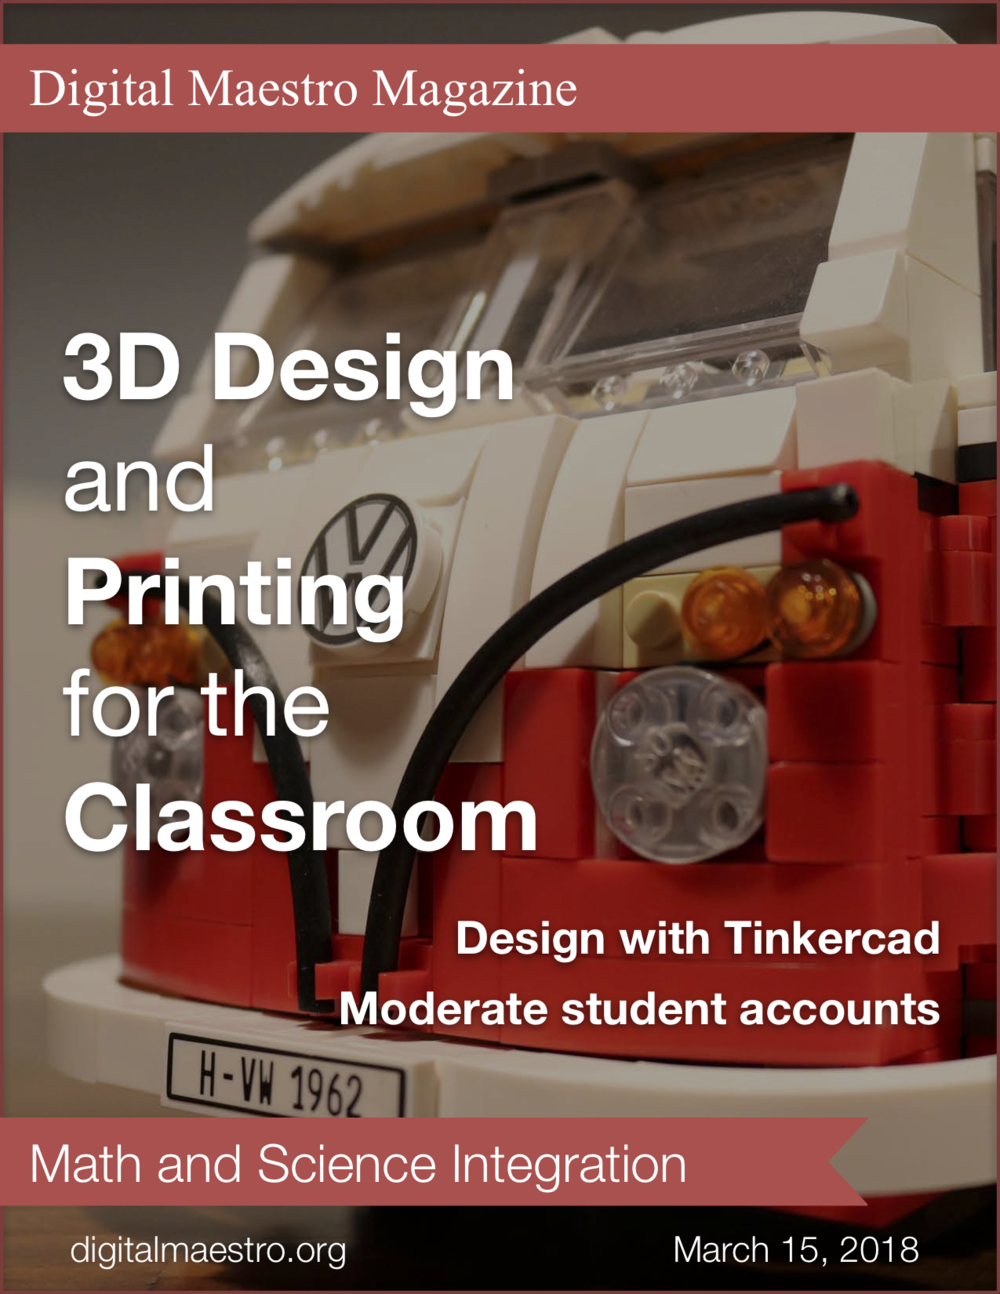 3D design and printing in the classroom - Use TinkerCAD to design models. Design models that teach math and science concepts.Download a free preview